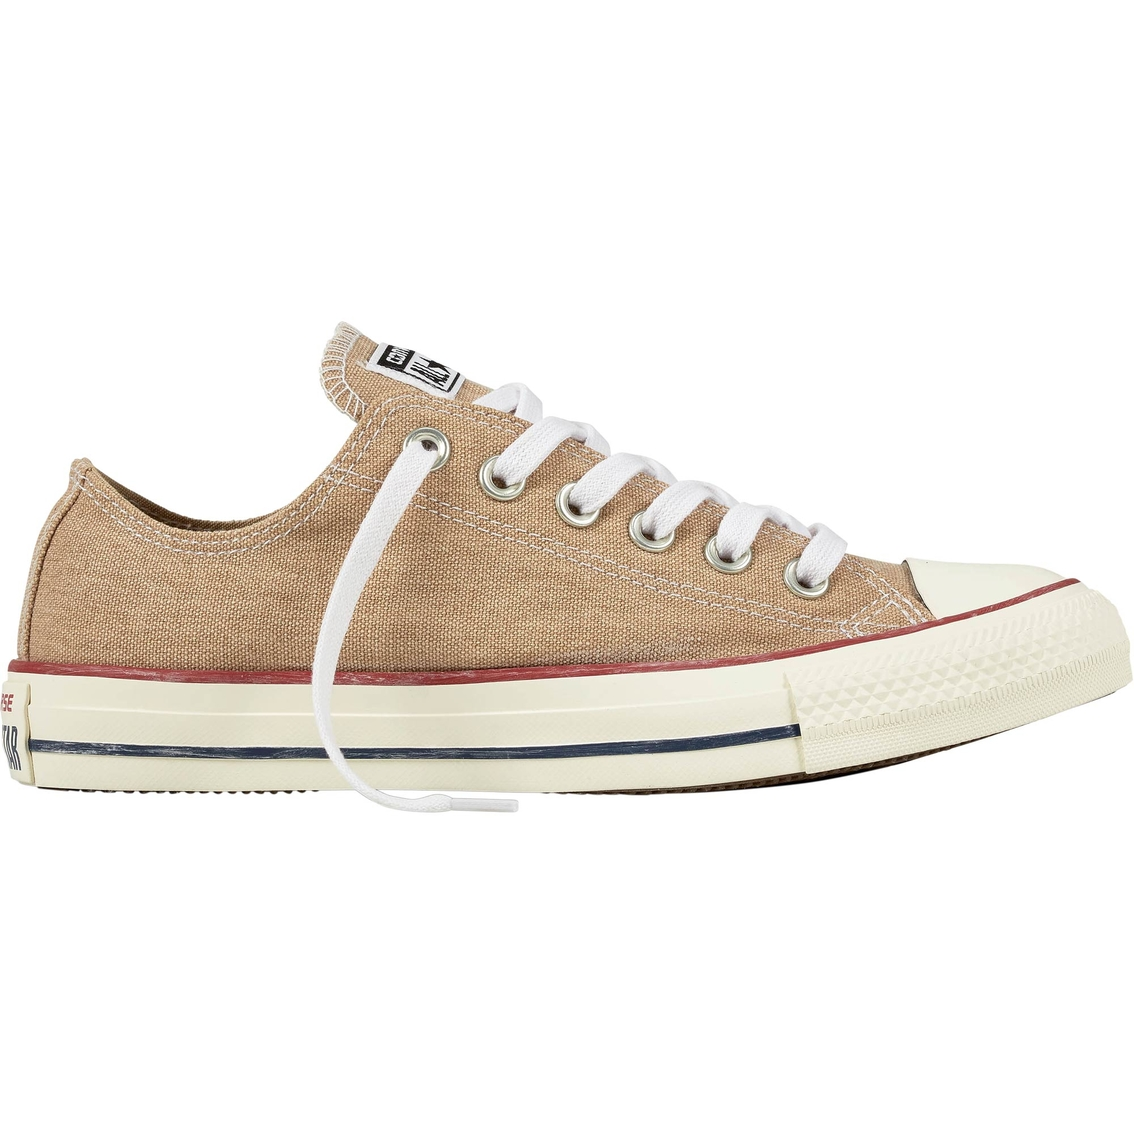 854ed4ef18d0 Converse Chuck Taylor All Star Men s Ox Stone Wash Sneakers ...